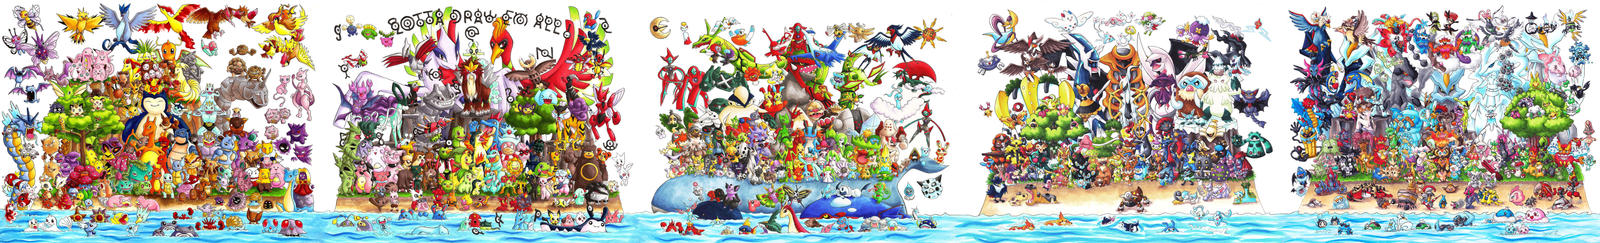 legendary pokemon wallpaper download free